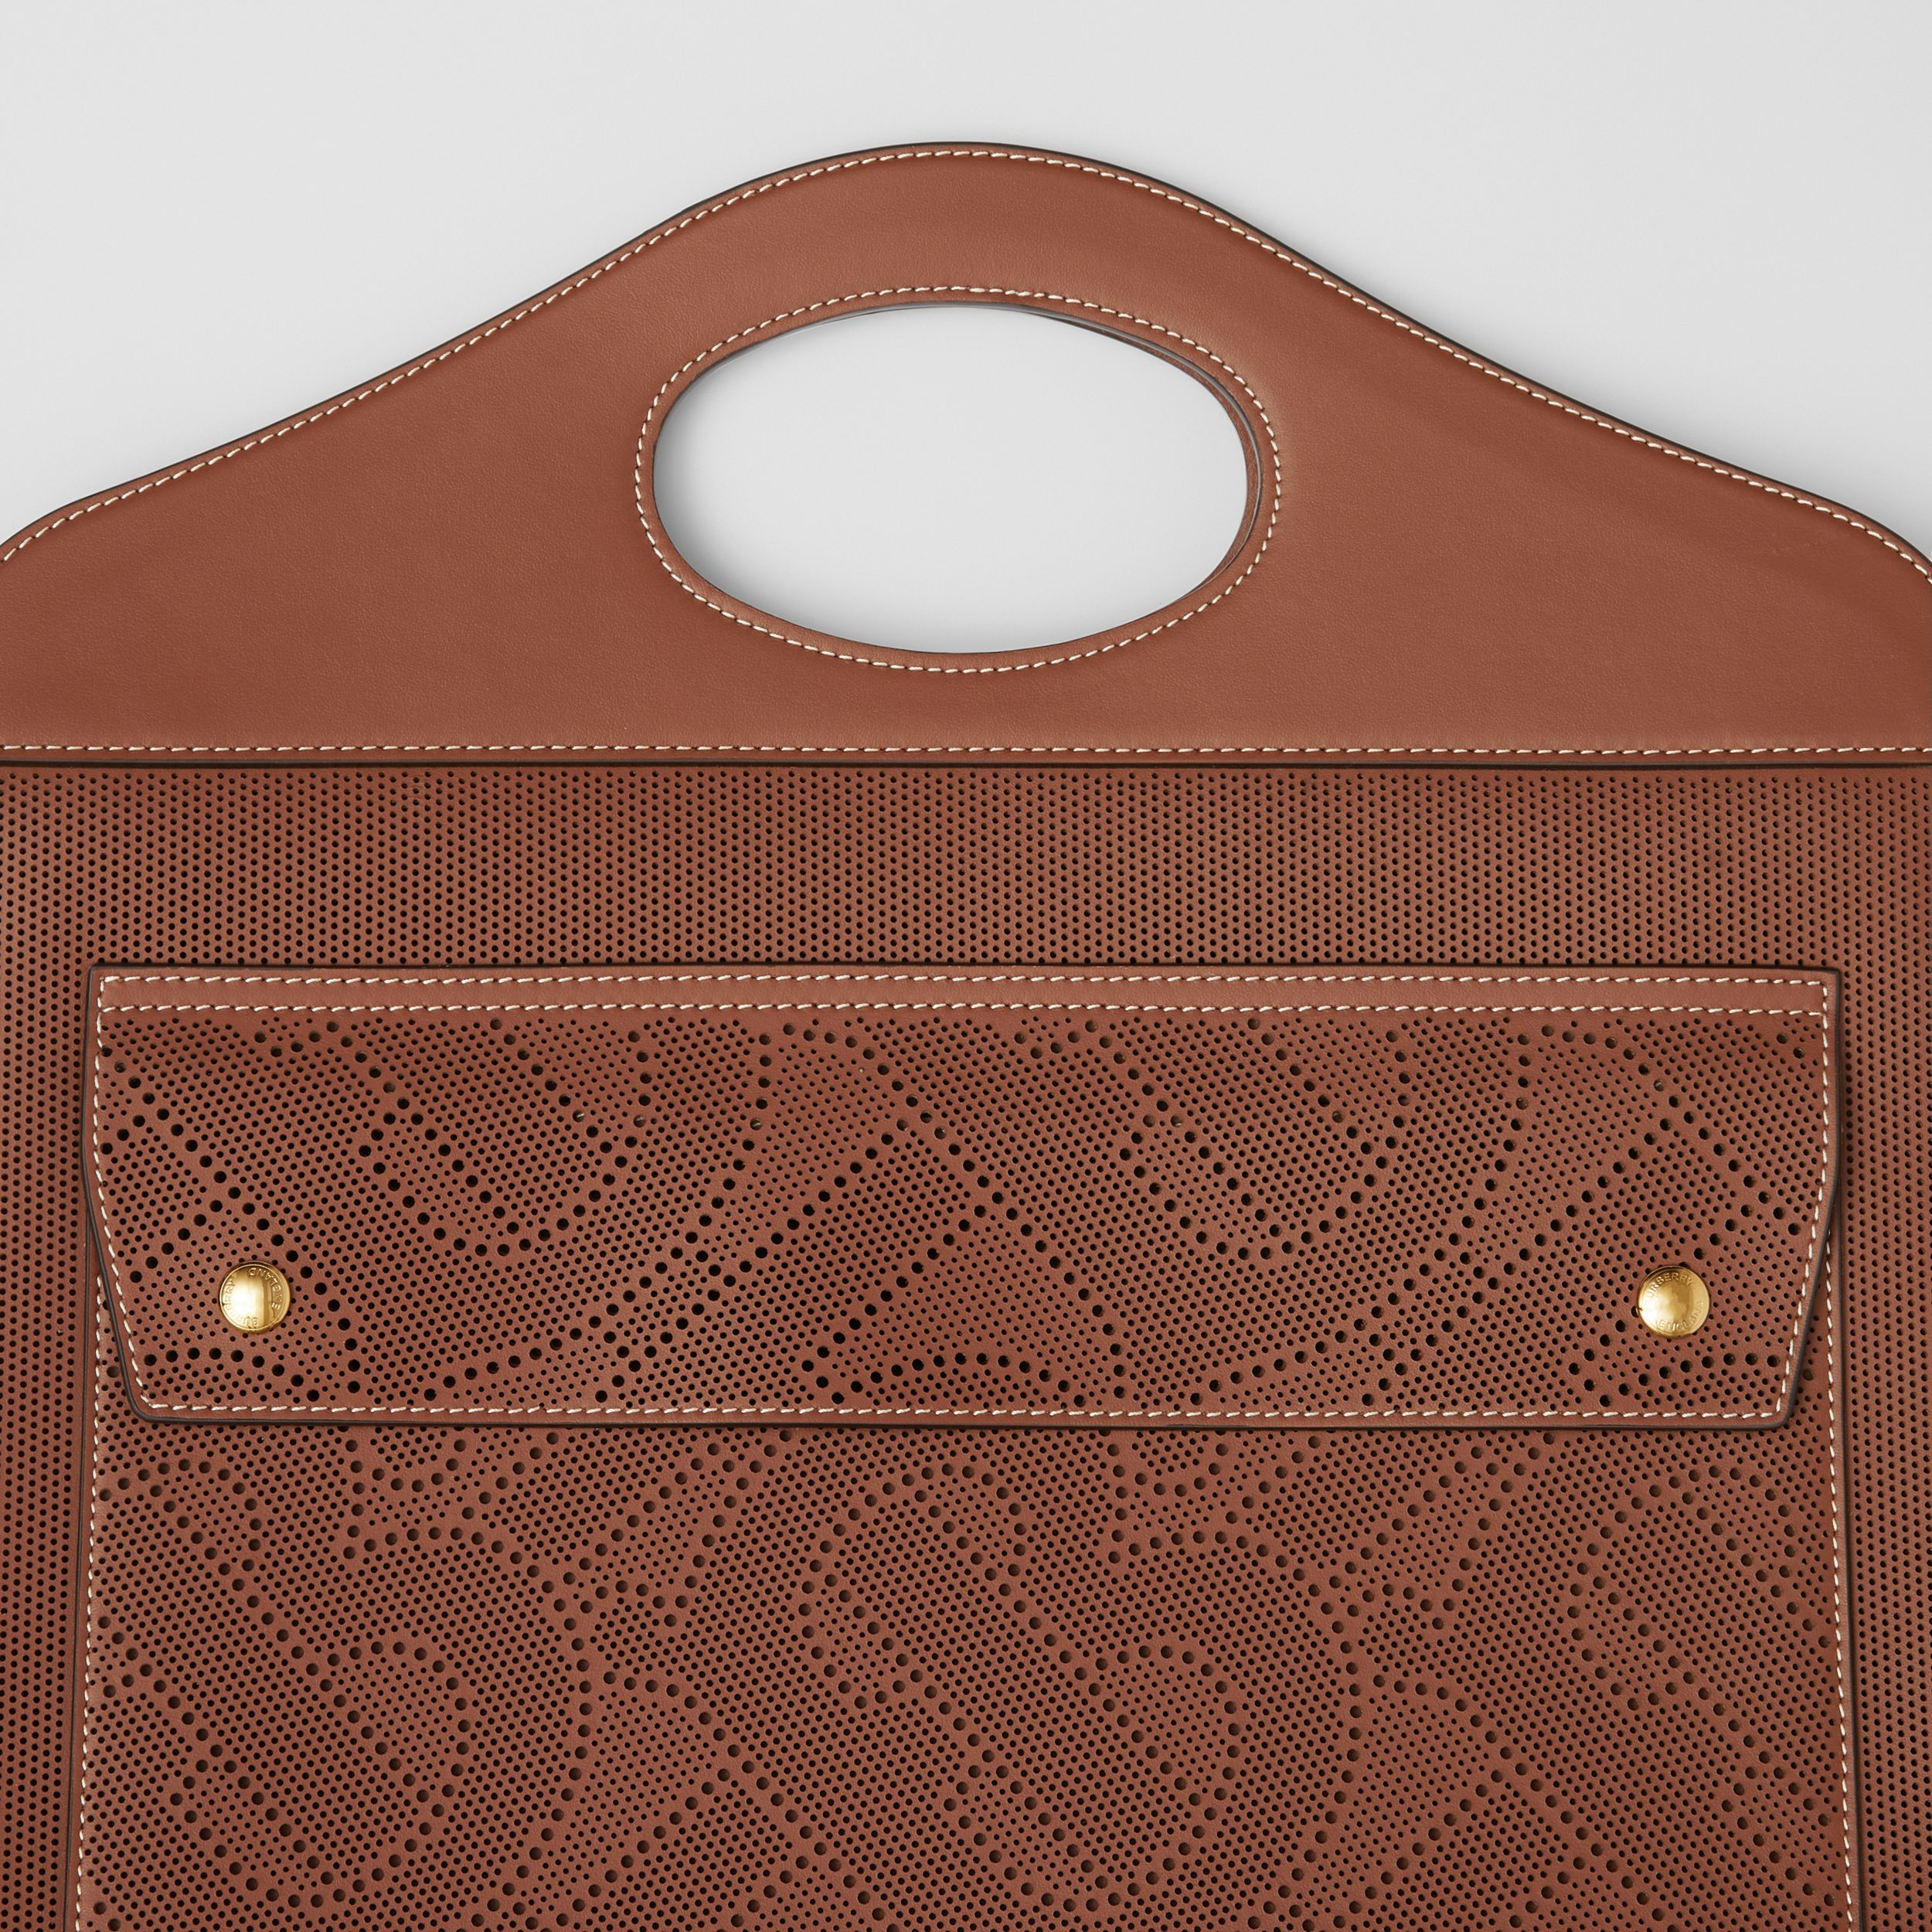 Medium Perforated Monogram Leather Pocket Bag in Tan - Women | Burberry - 2